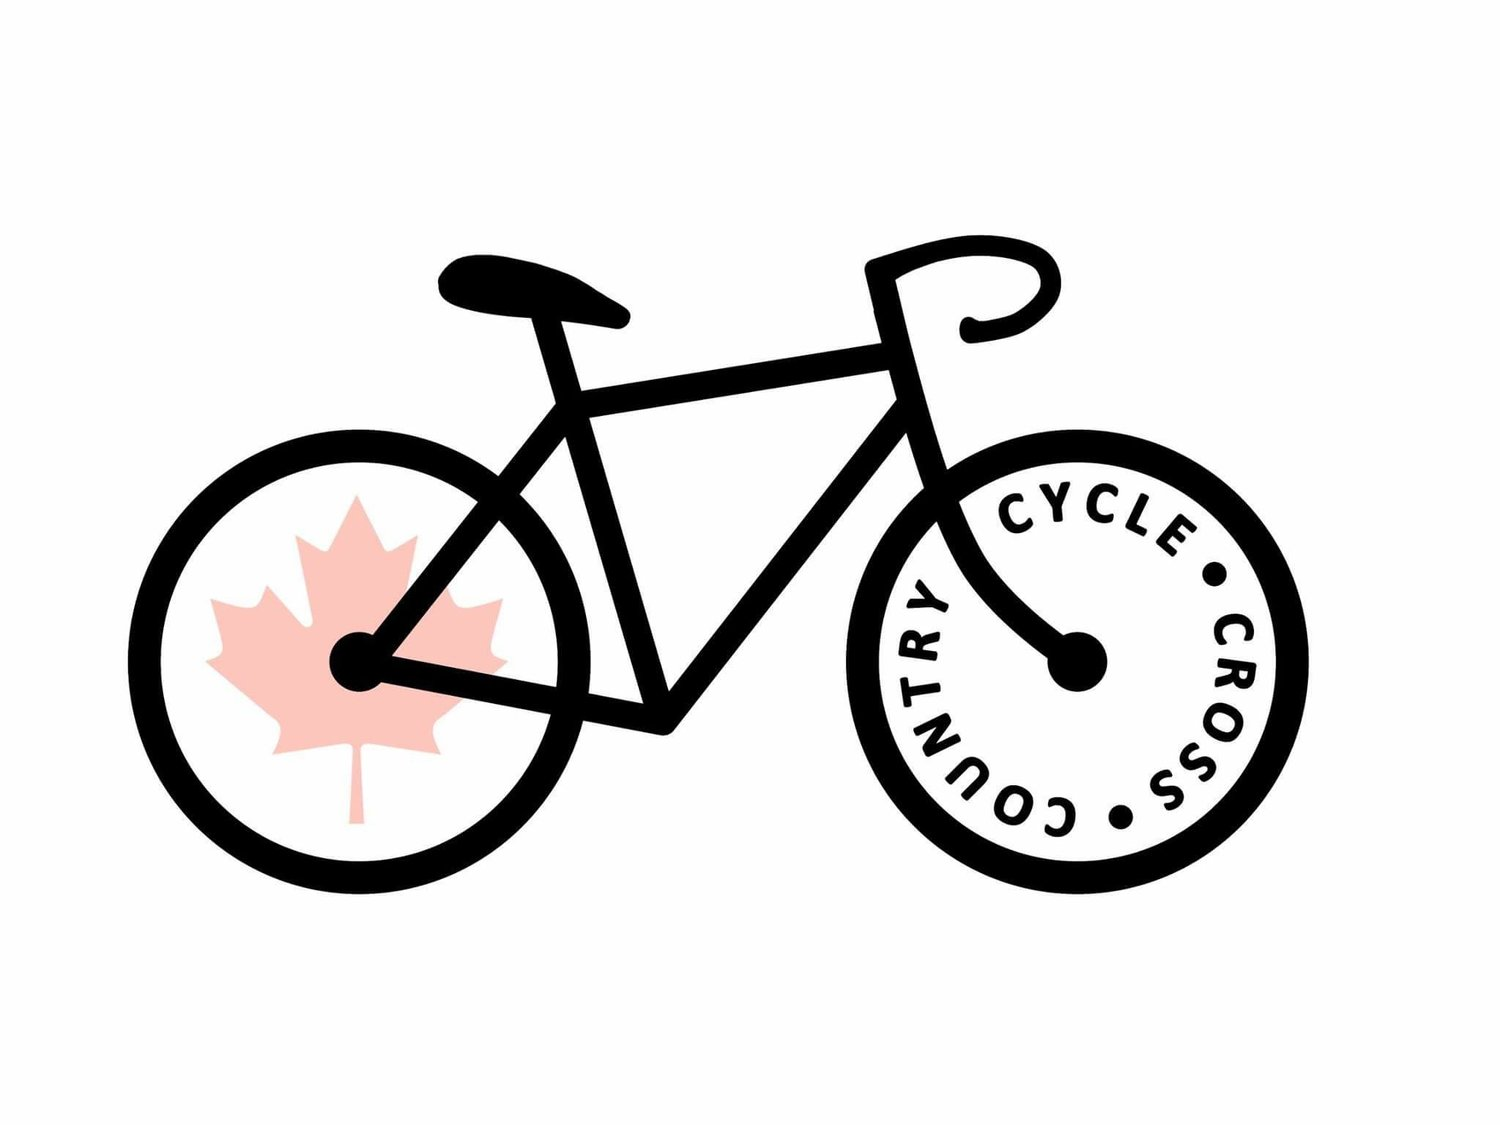 Cyclecrosscountry